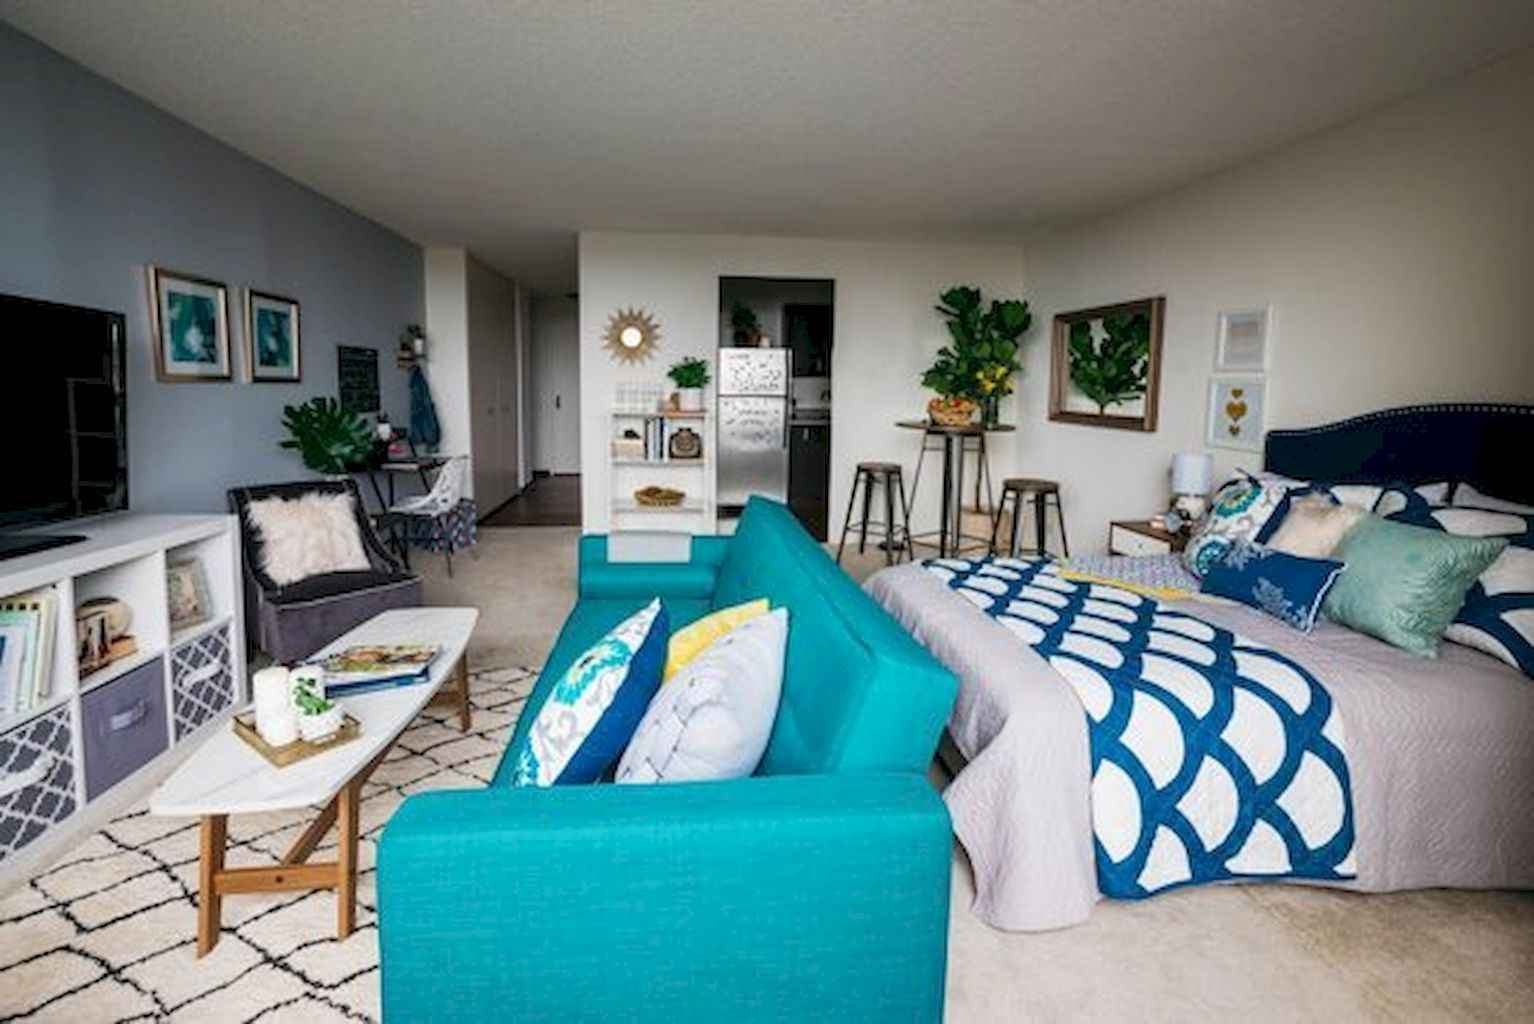 Cool small apartment decorating ideas on a budget (49)